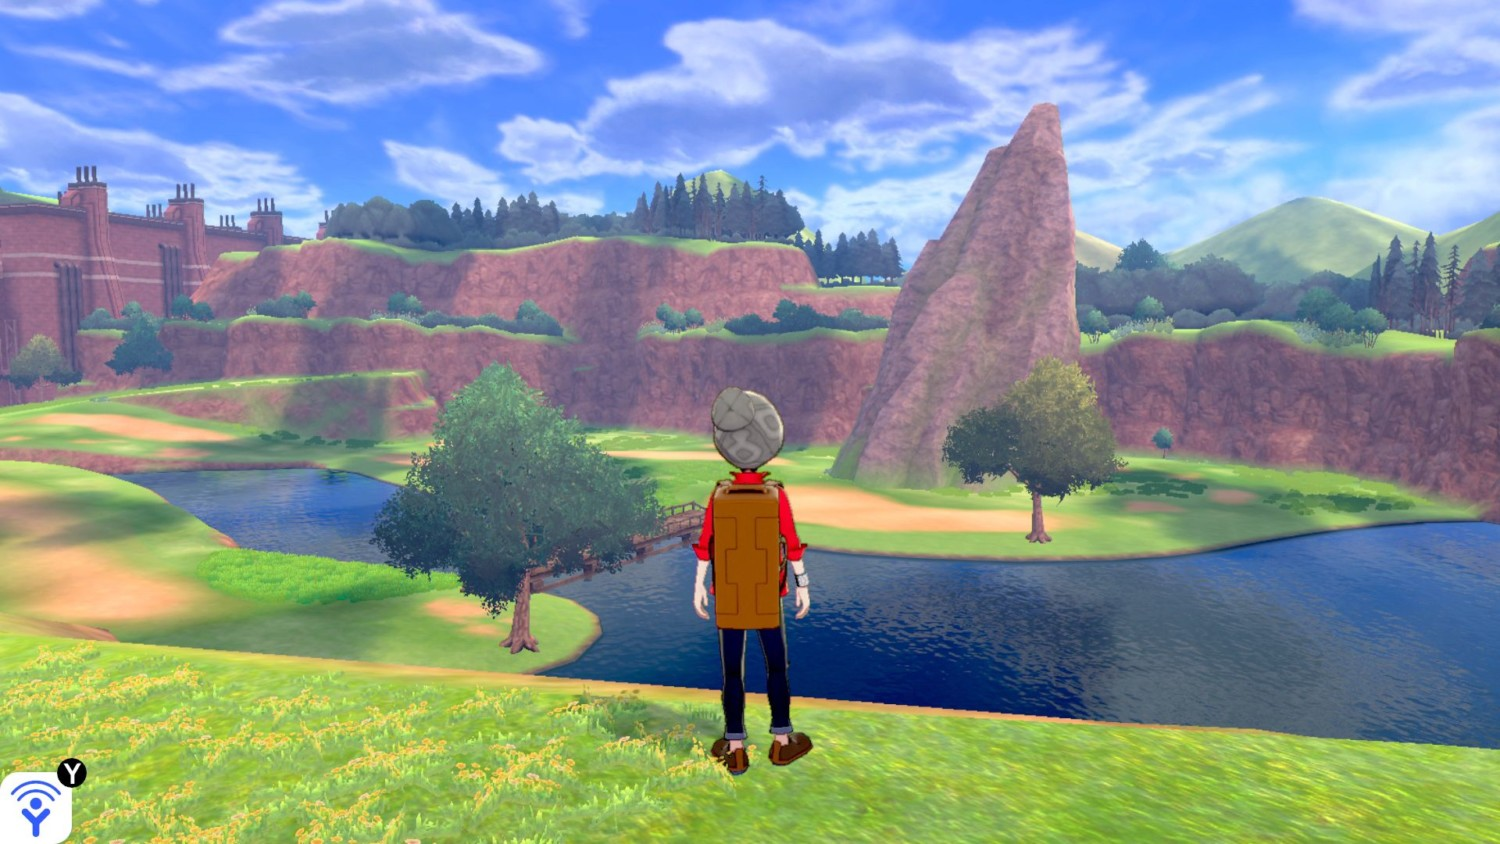 Pokemon Sword And Shield Are The Most Hated Games At E3 2019 | NintendoSoup